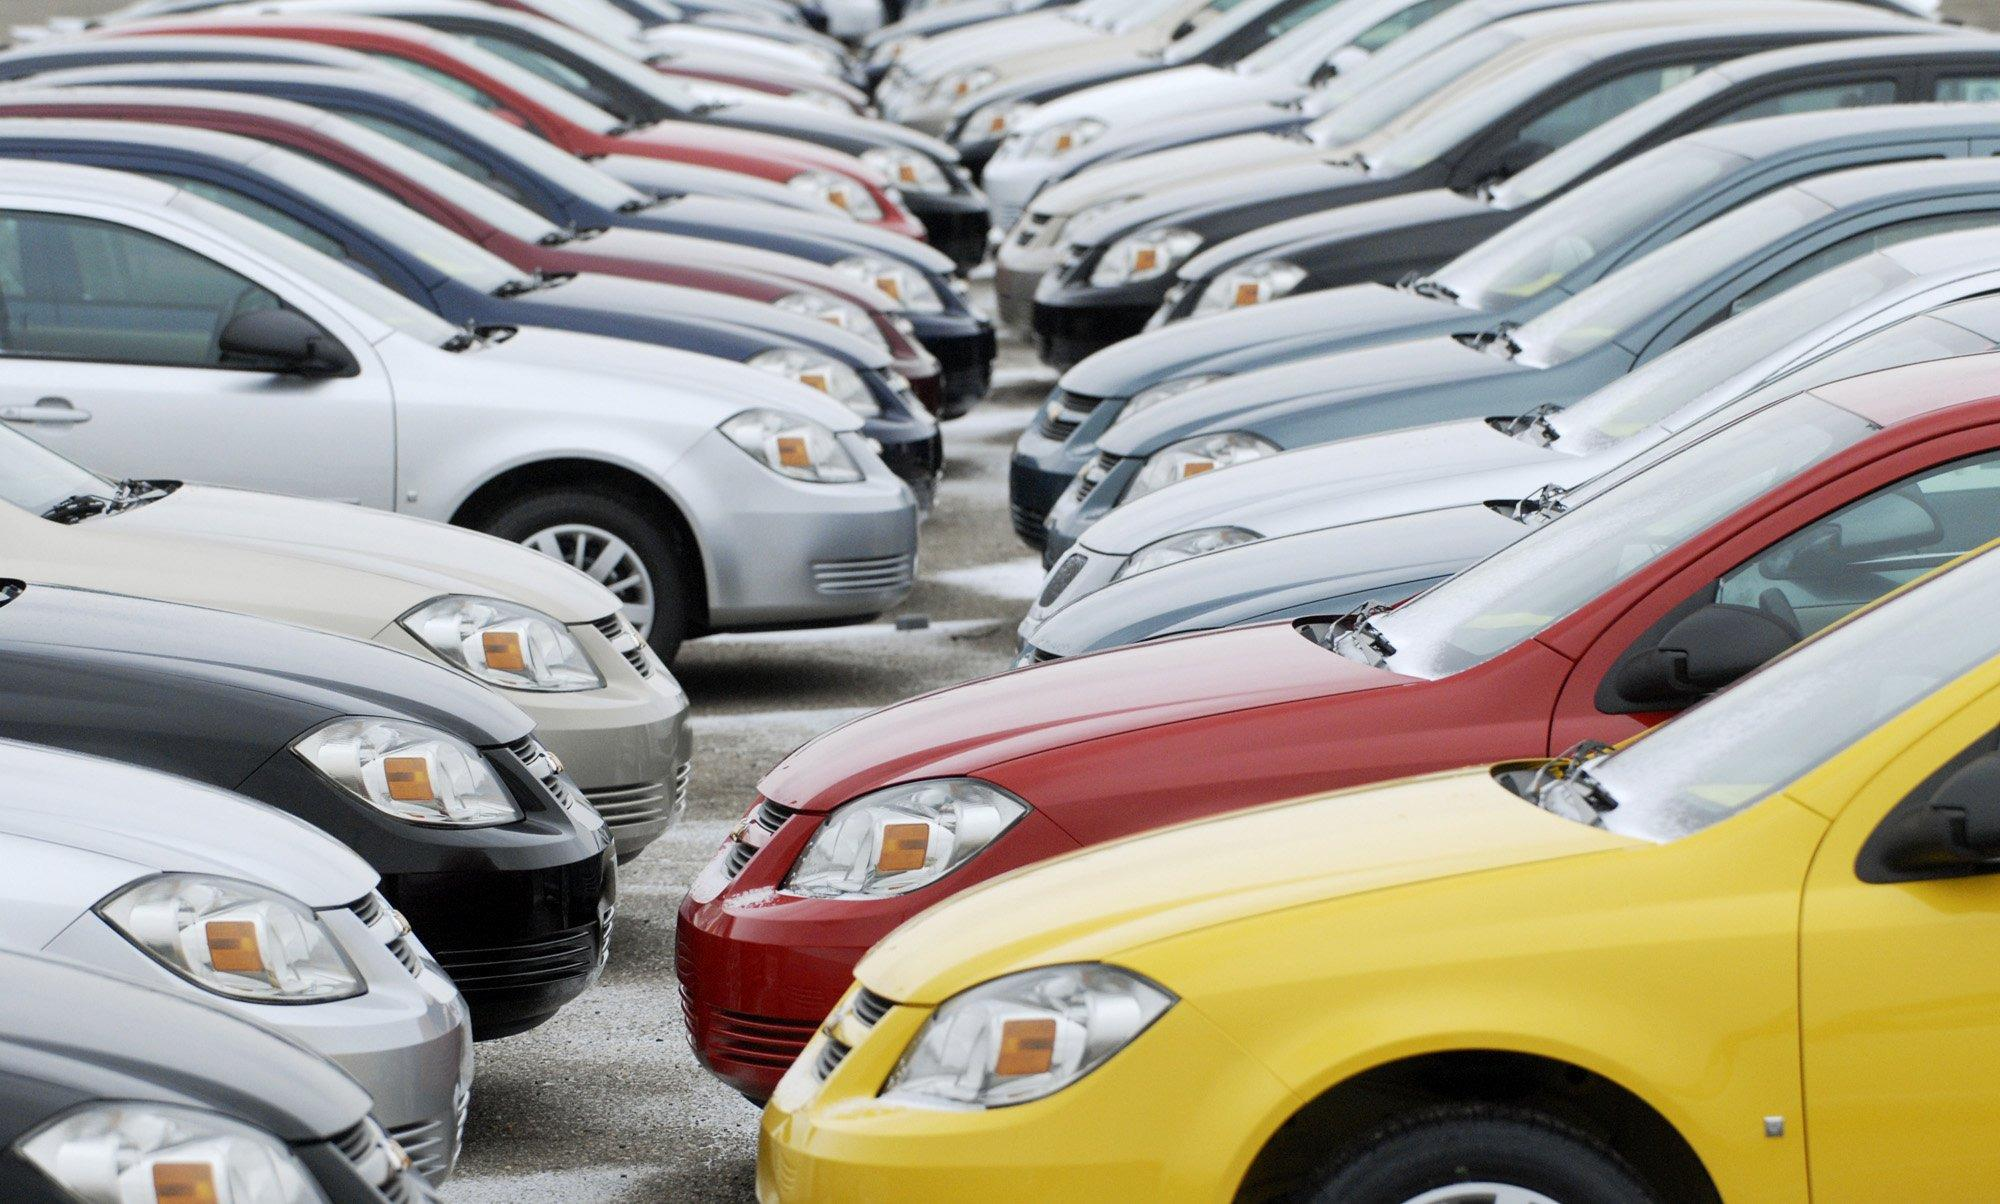 General Motors faces a flurry of lawsuits resulting from its recall of 1.6 million cars for a faulty ignition key.